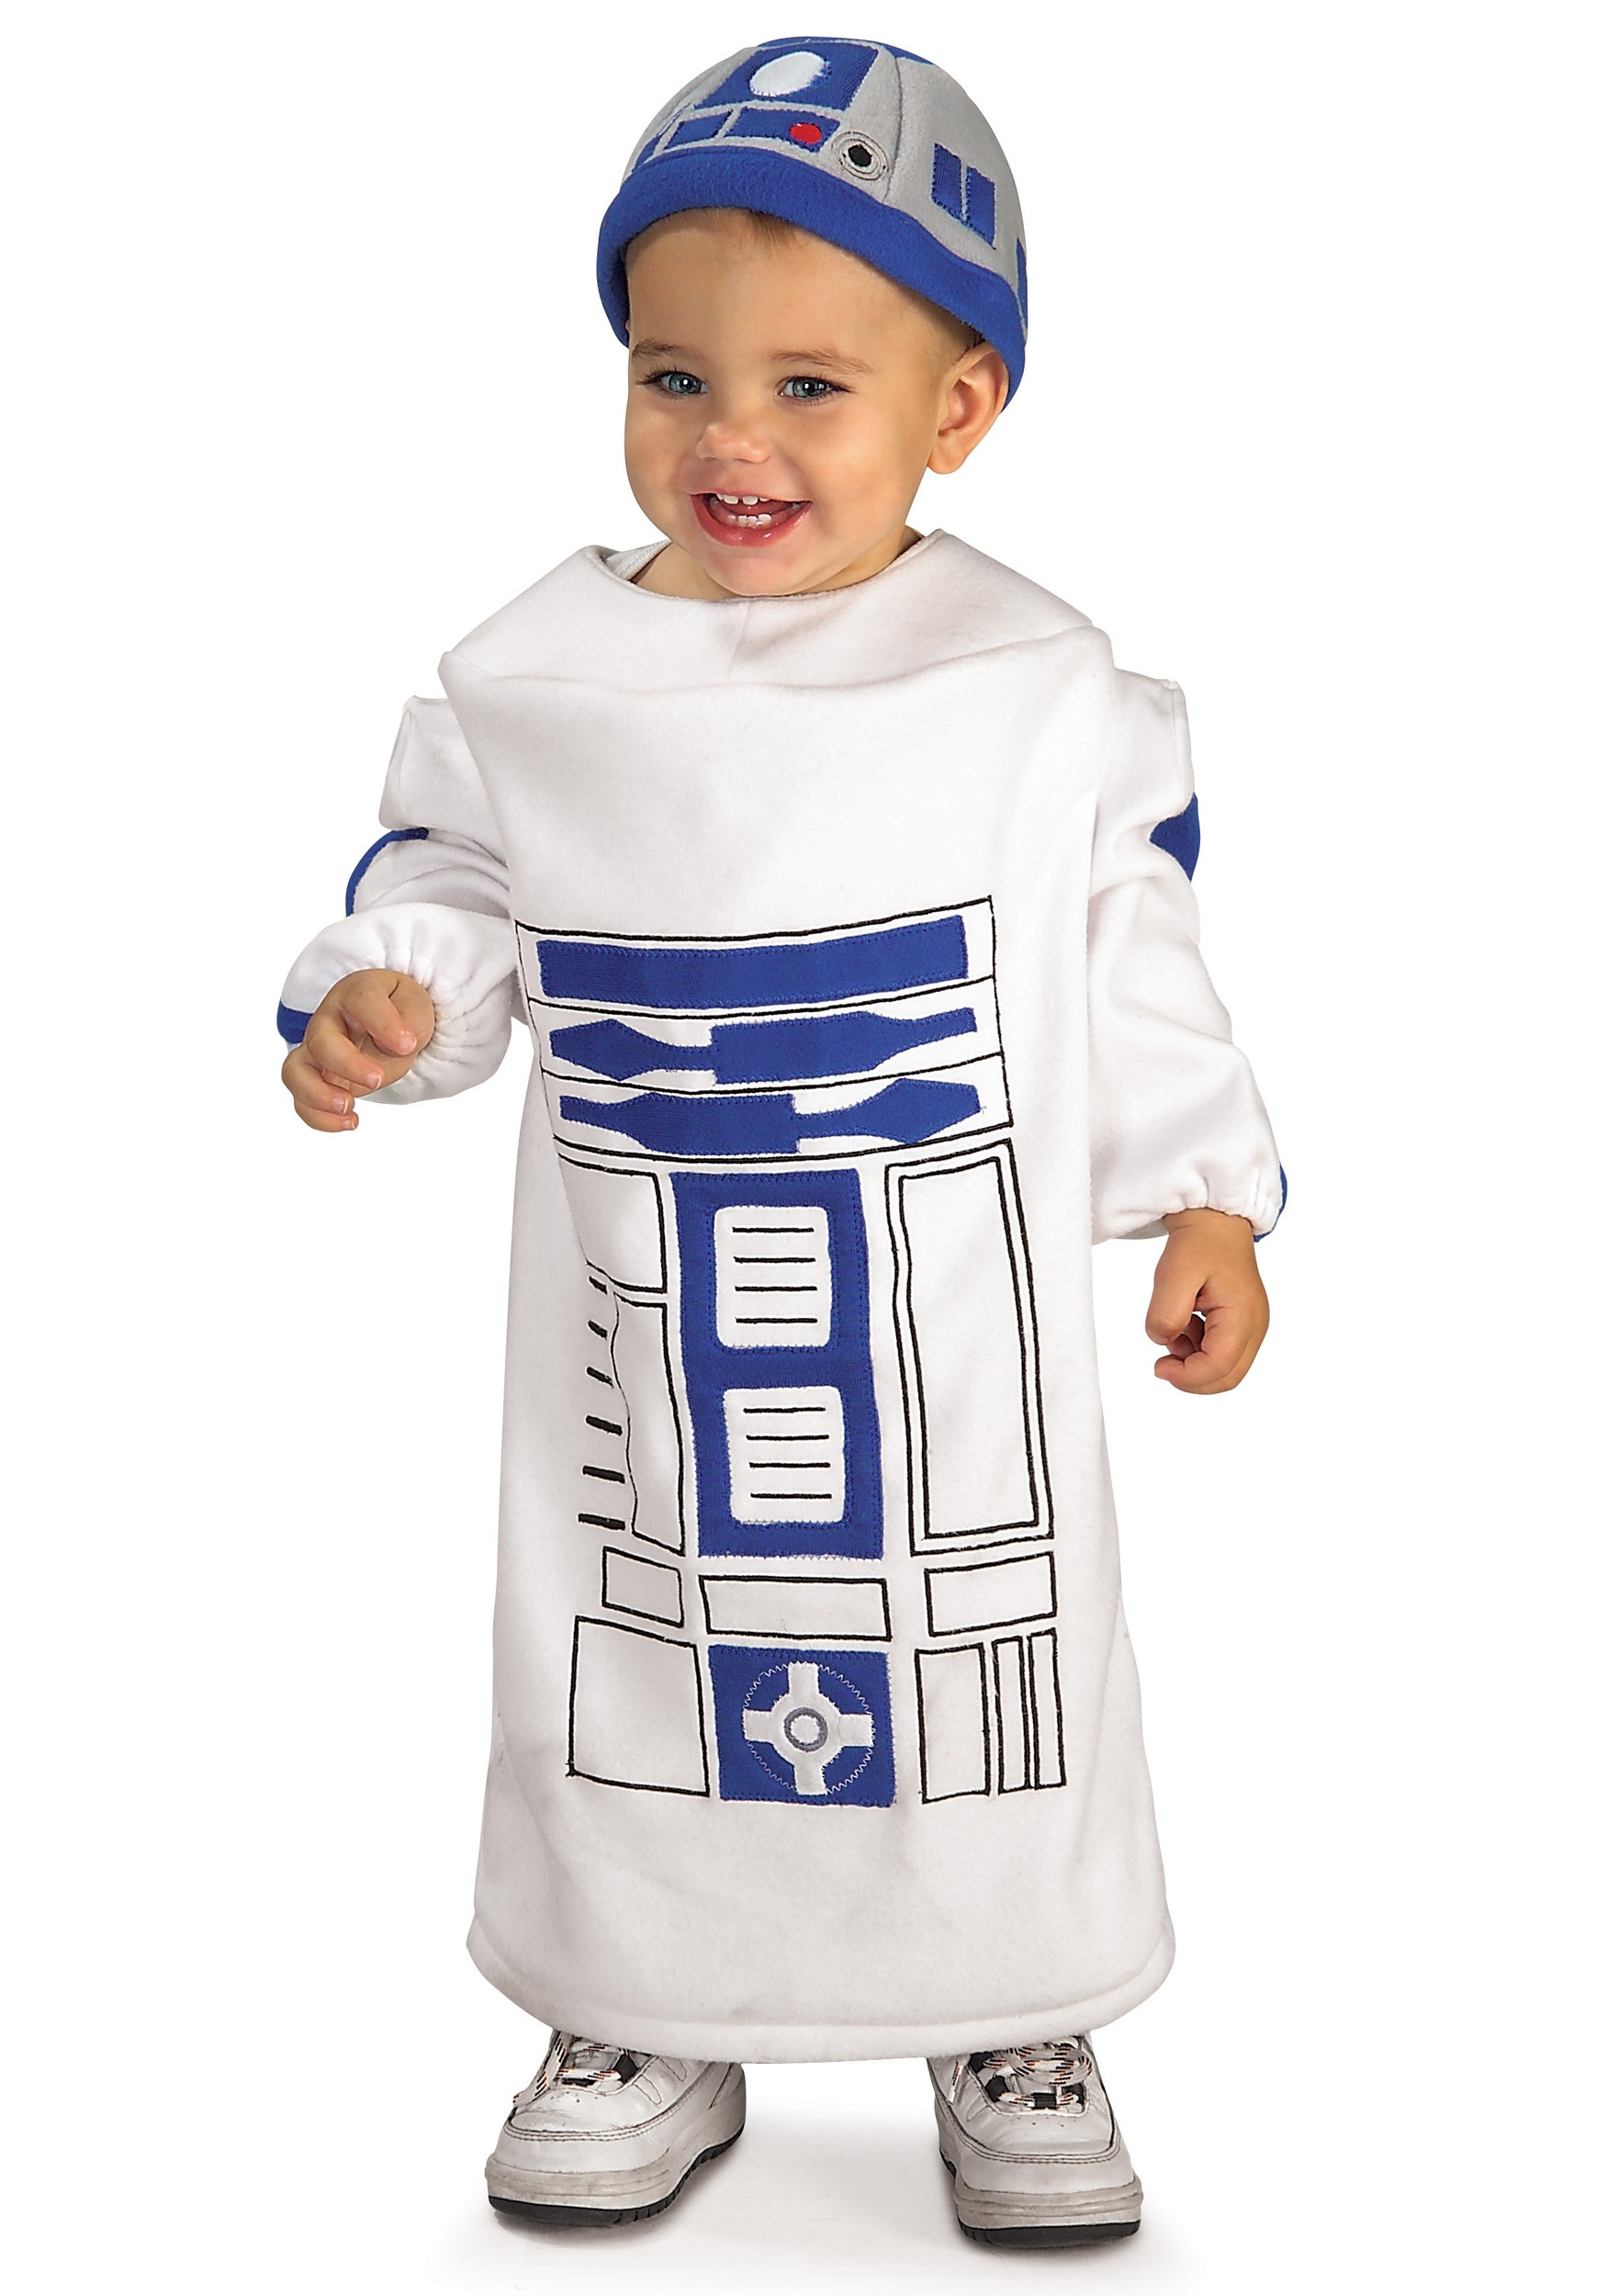 Toddler R2D2 Costume  sc 1 st  Halloween Costume Ideas & Toddler R2D2 Costume - Toddler Star Wars Costumes